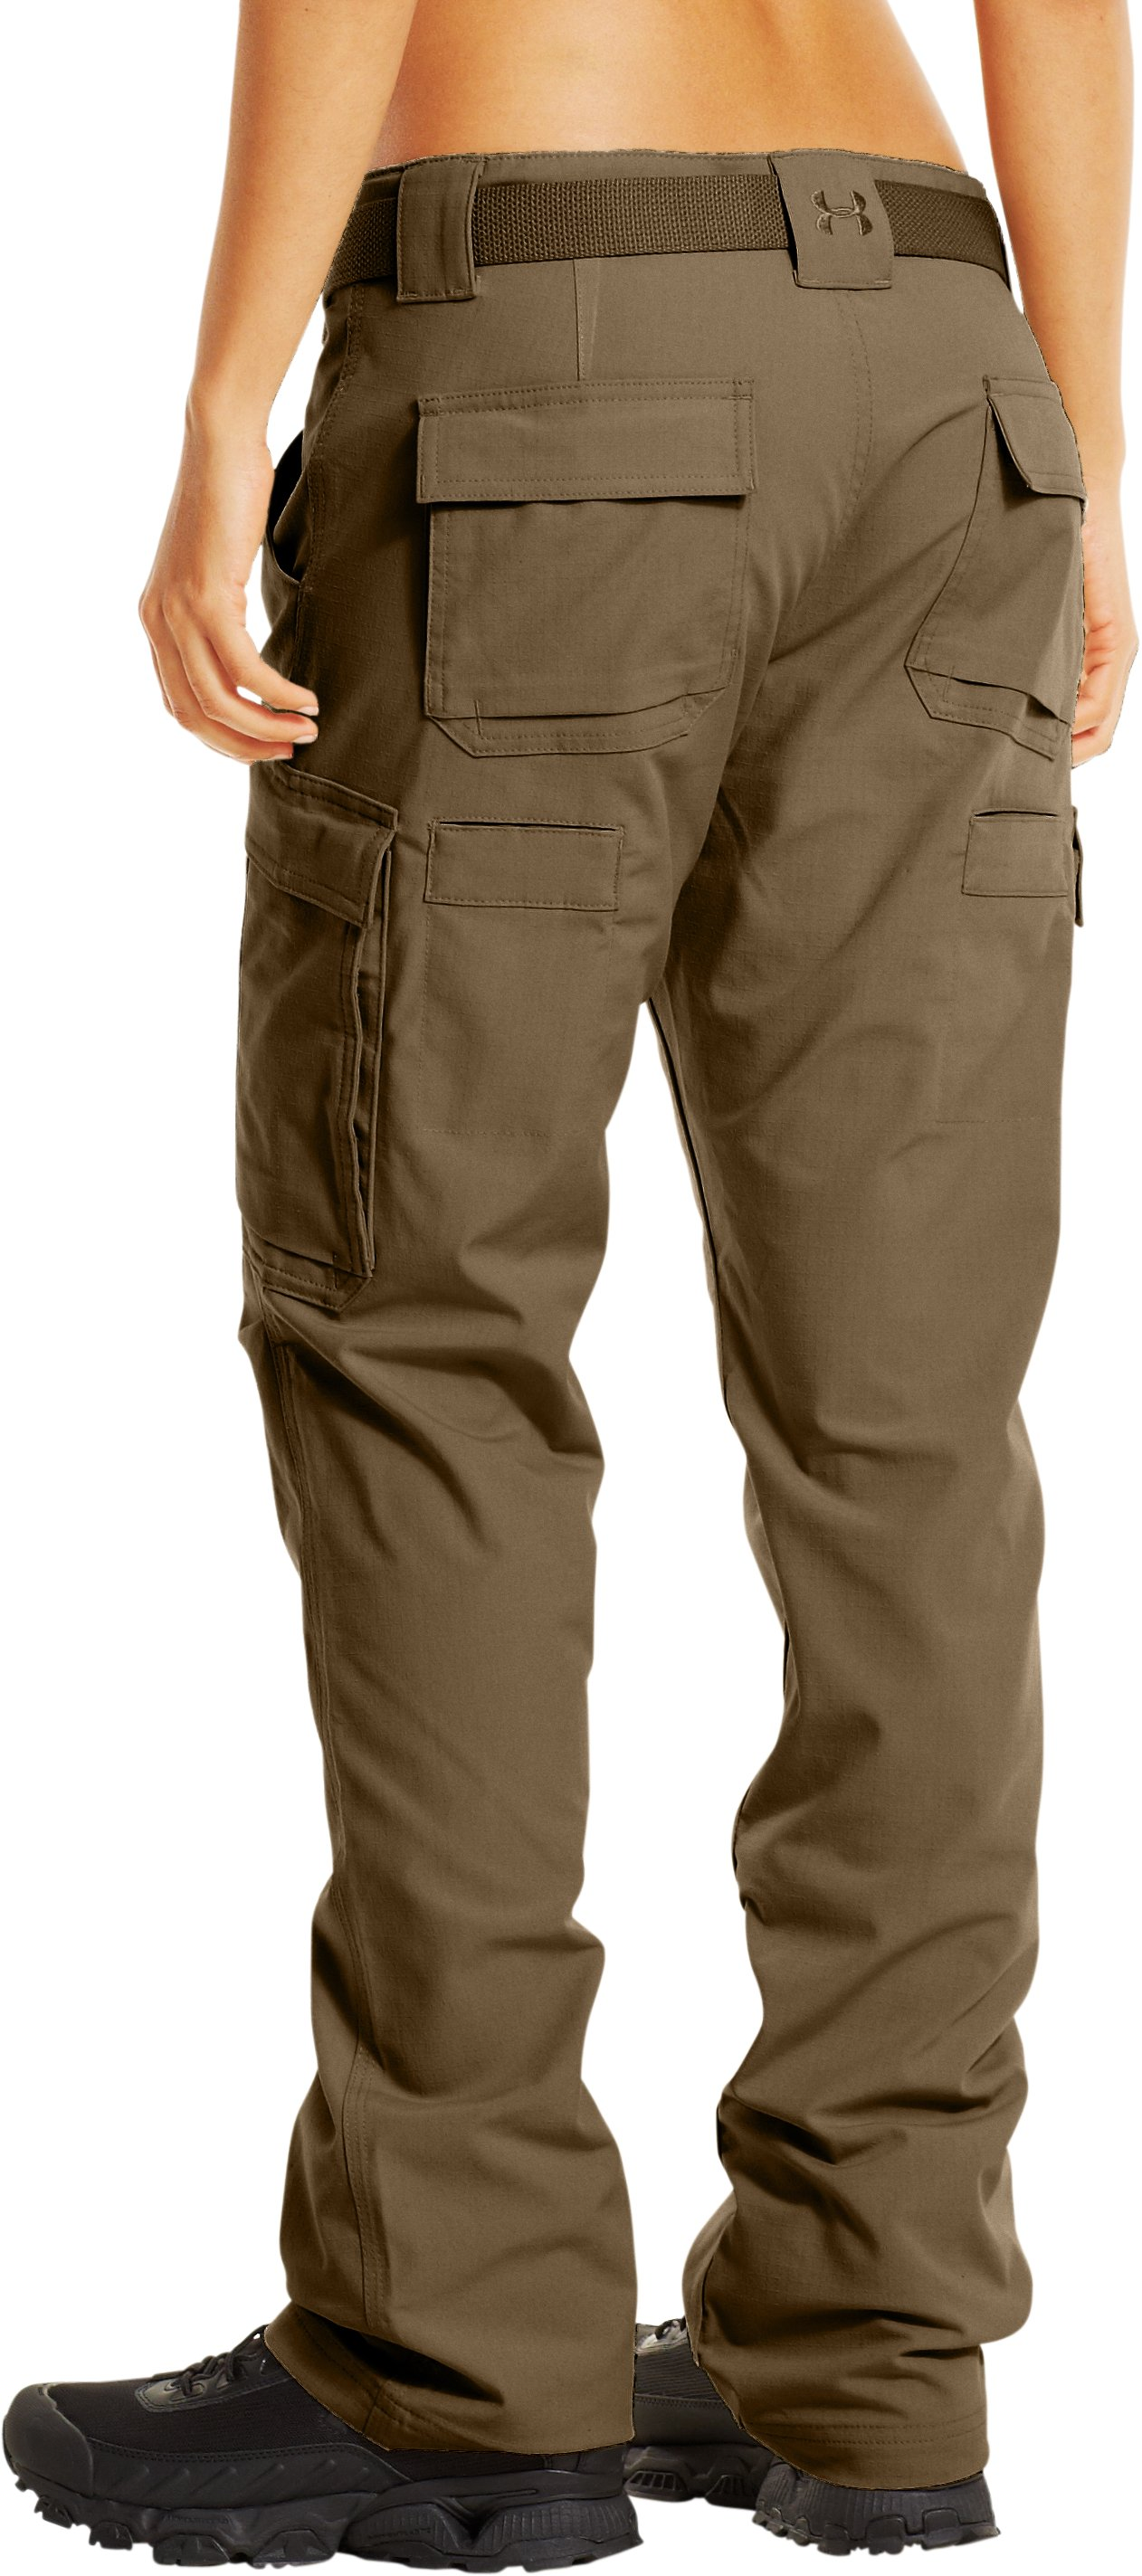 Women's Tactical Duty Pants, Coyote Brown, undefined